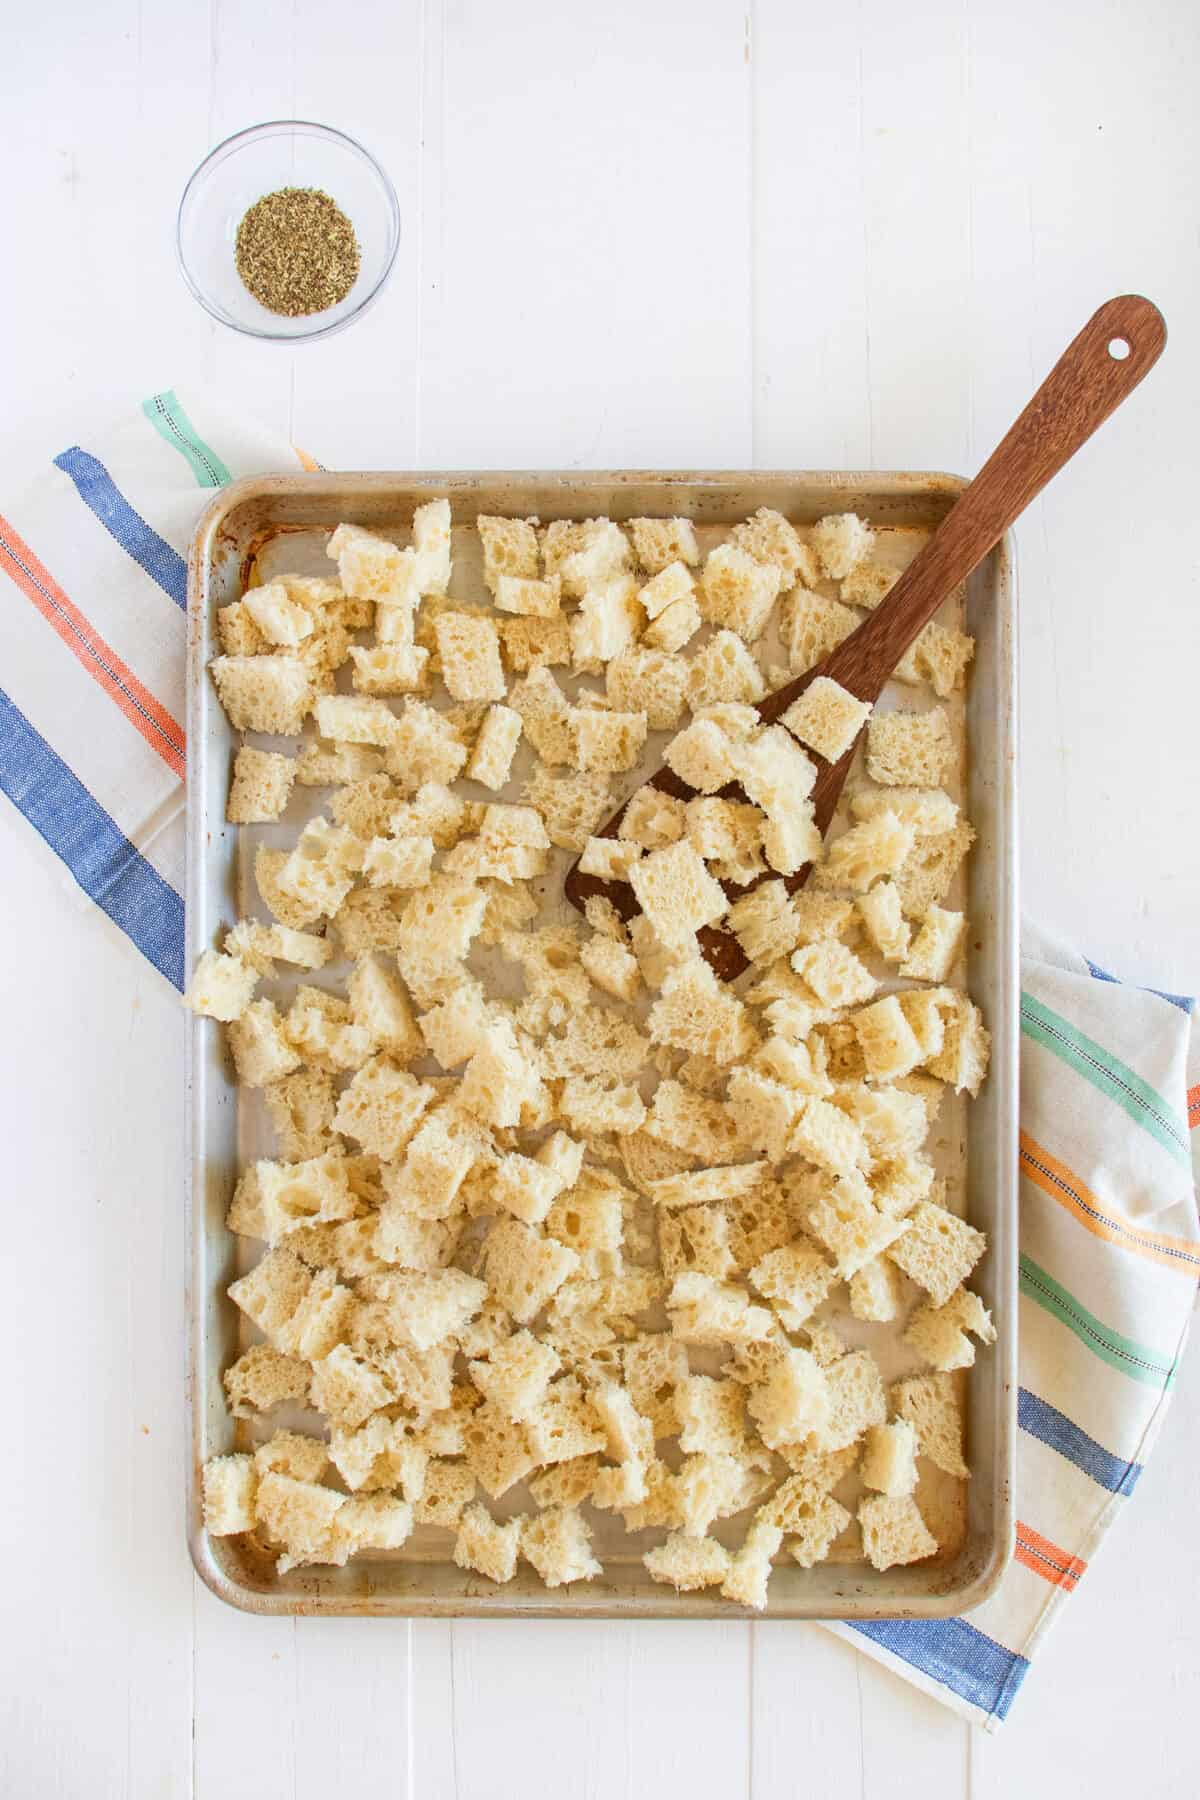 bread cubes on a baking tray